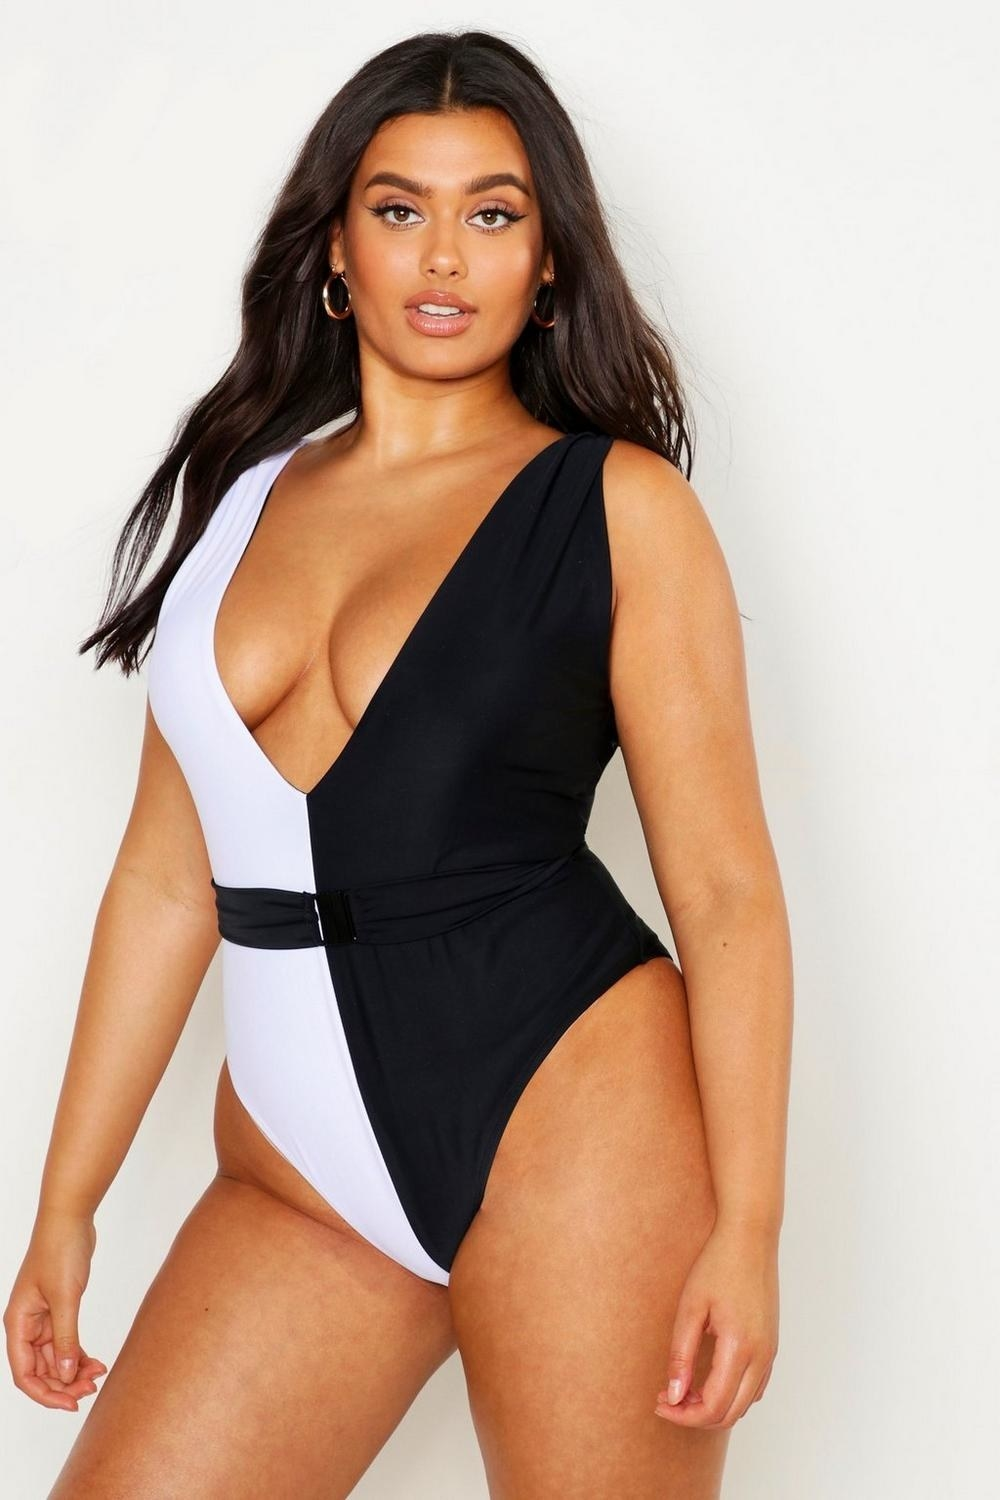 model wears one piece that is split vertically and half black and half white with a black belt